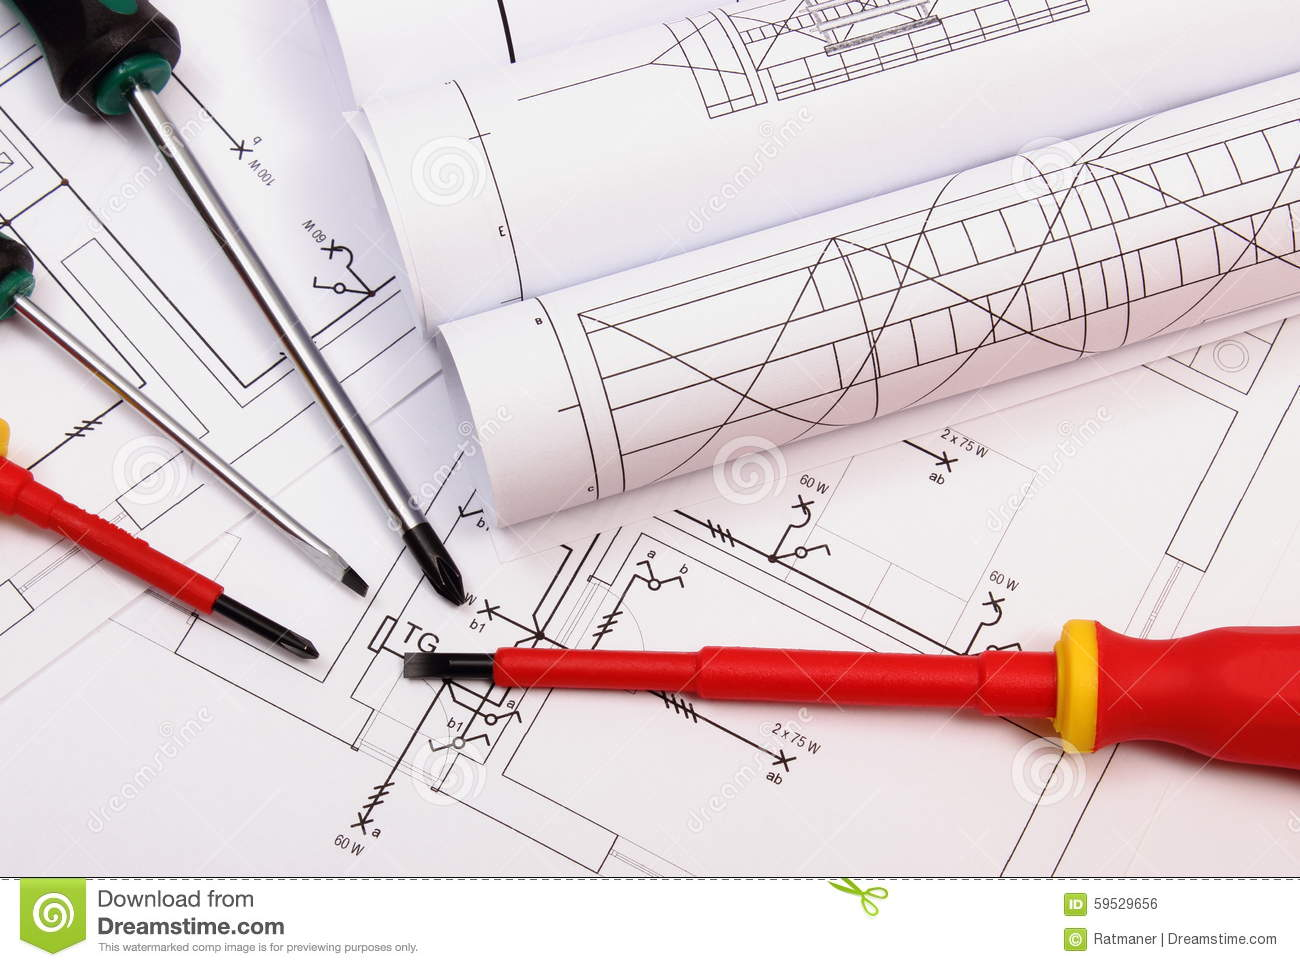 Tools And Diagrams Electrical Wiring Basic Network Setup Diagram Rolls Of Work On Construction Drawing Configuration Download